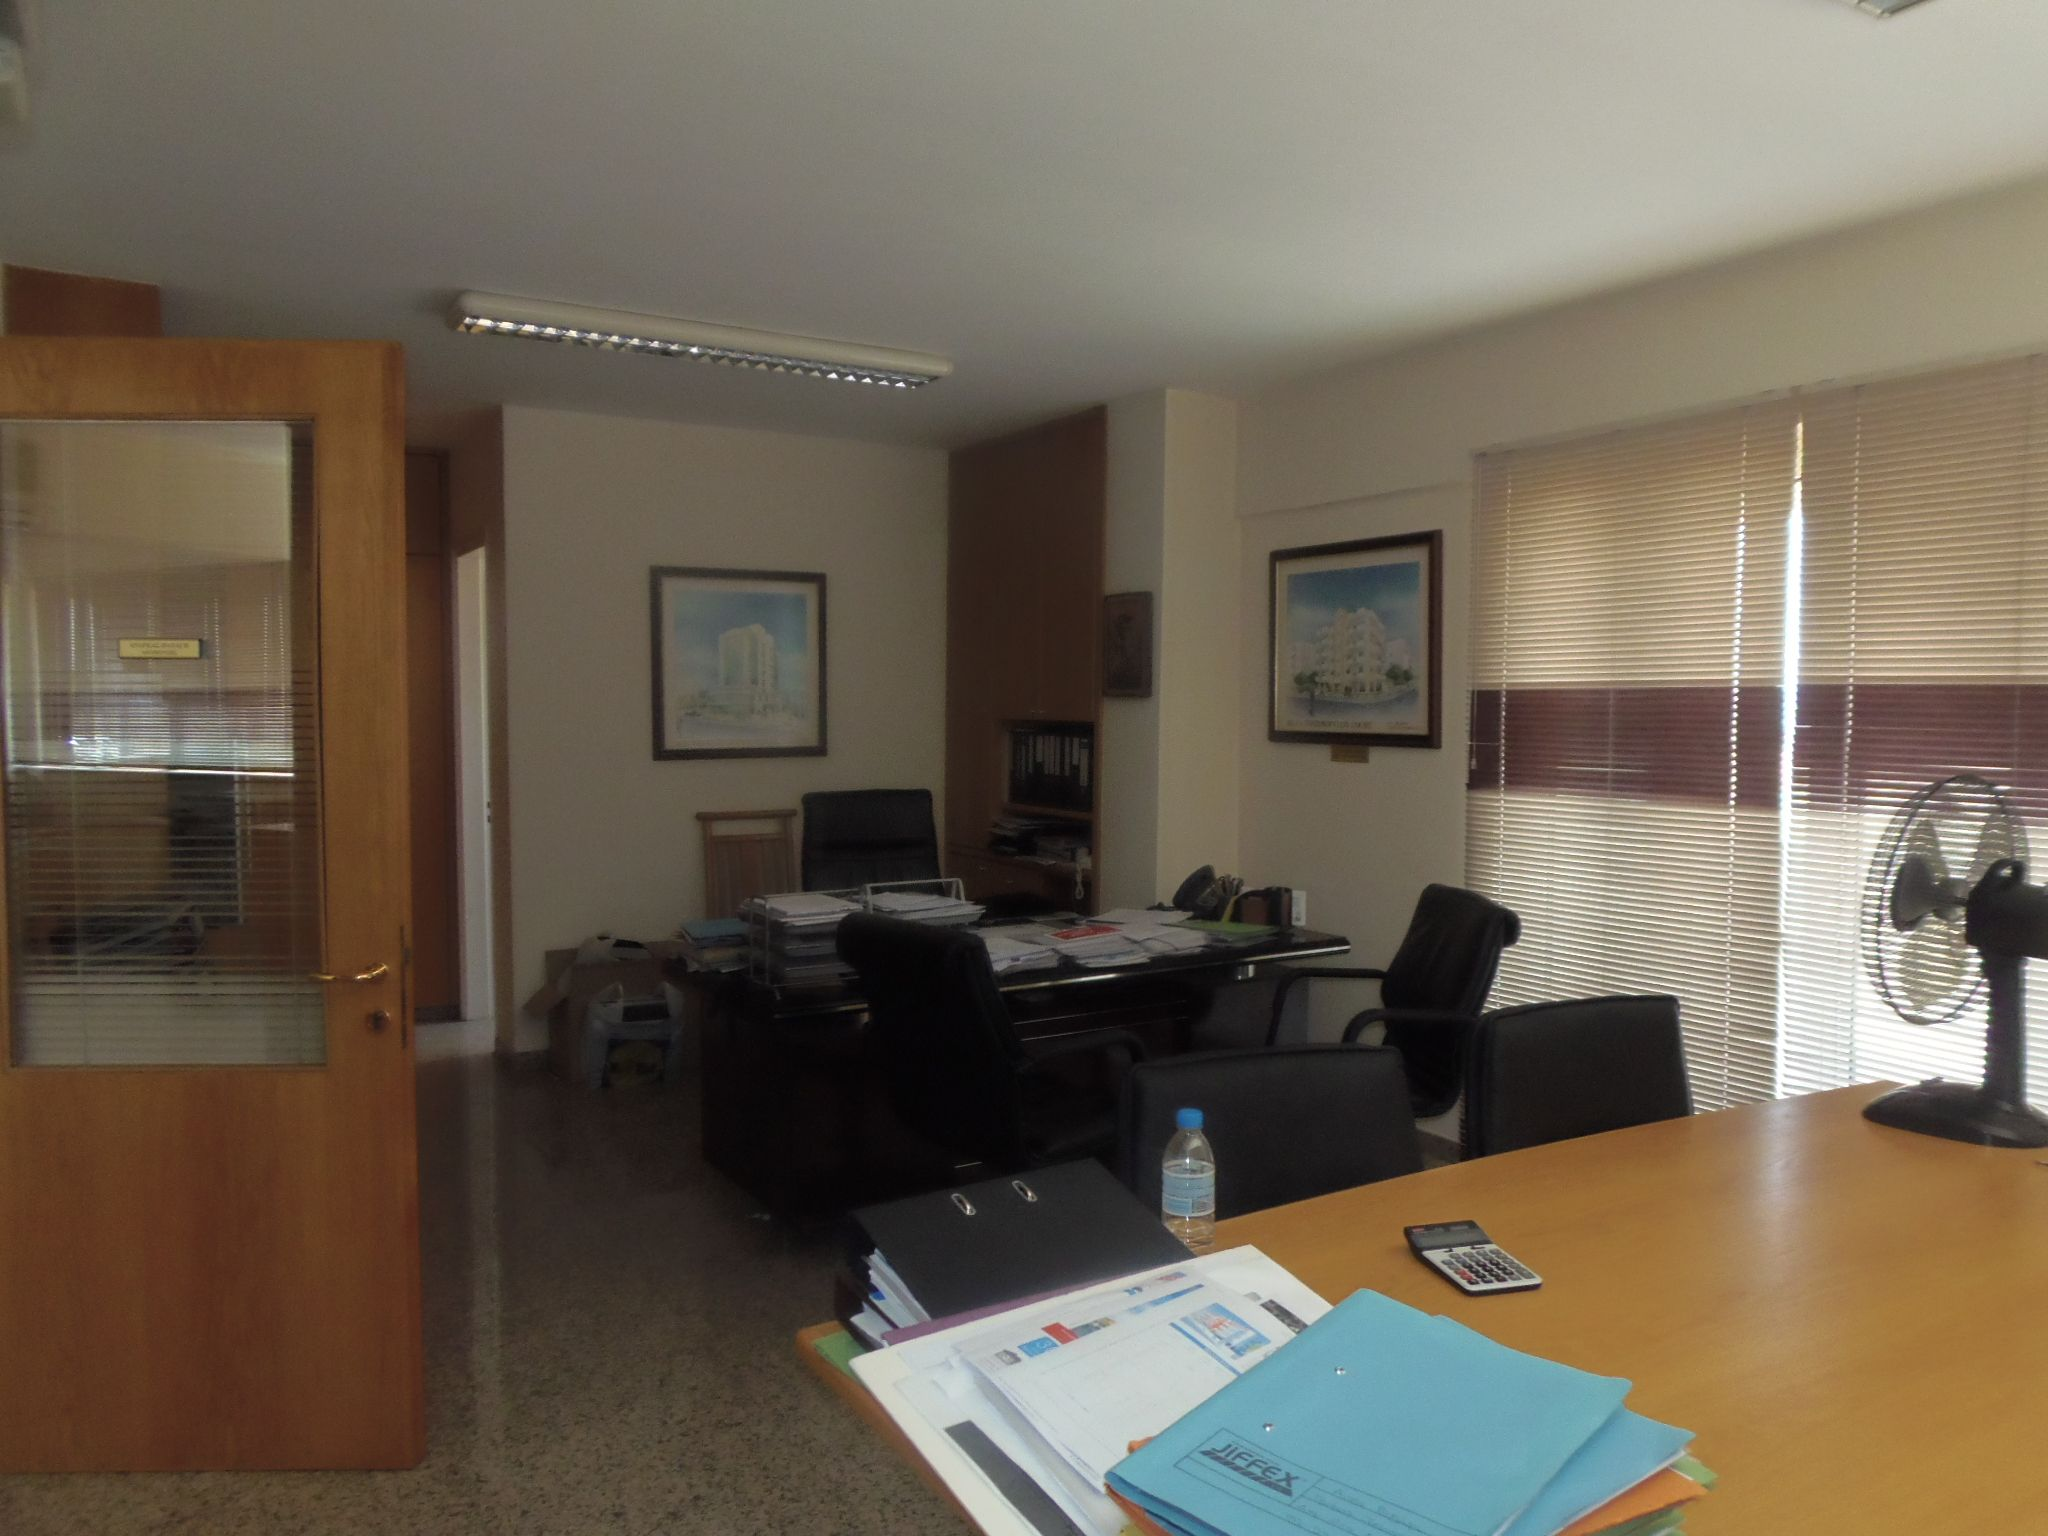 rent office space. FOR RENT Office Space IN Strovolos, Nicosia Rent